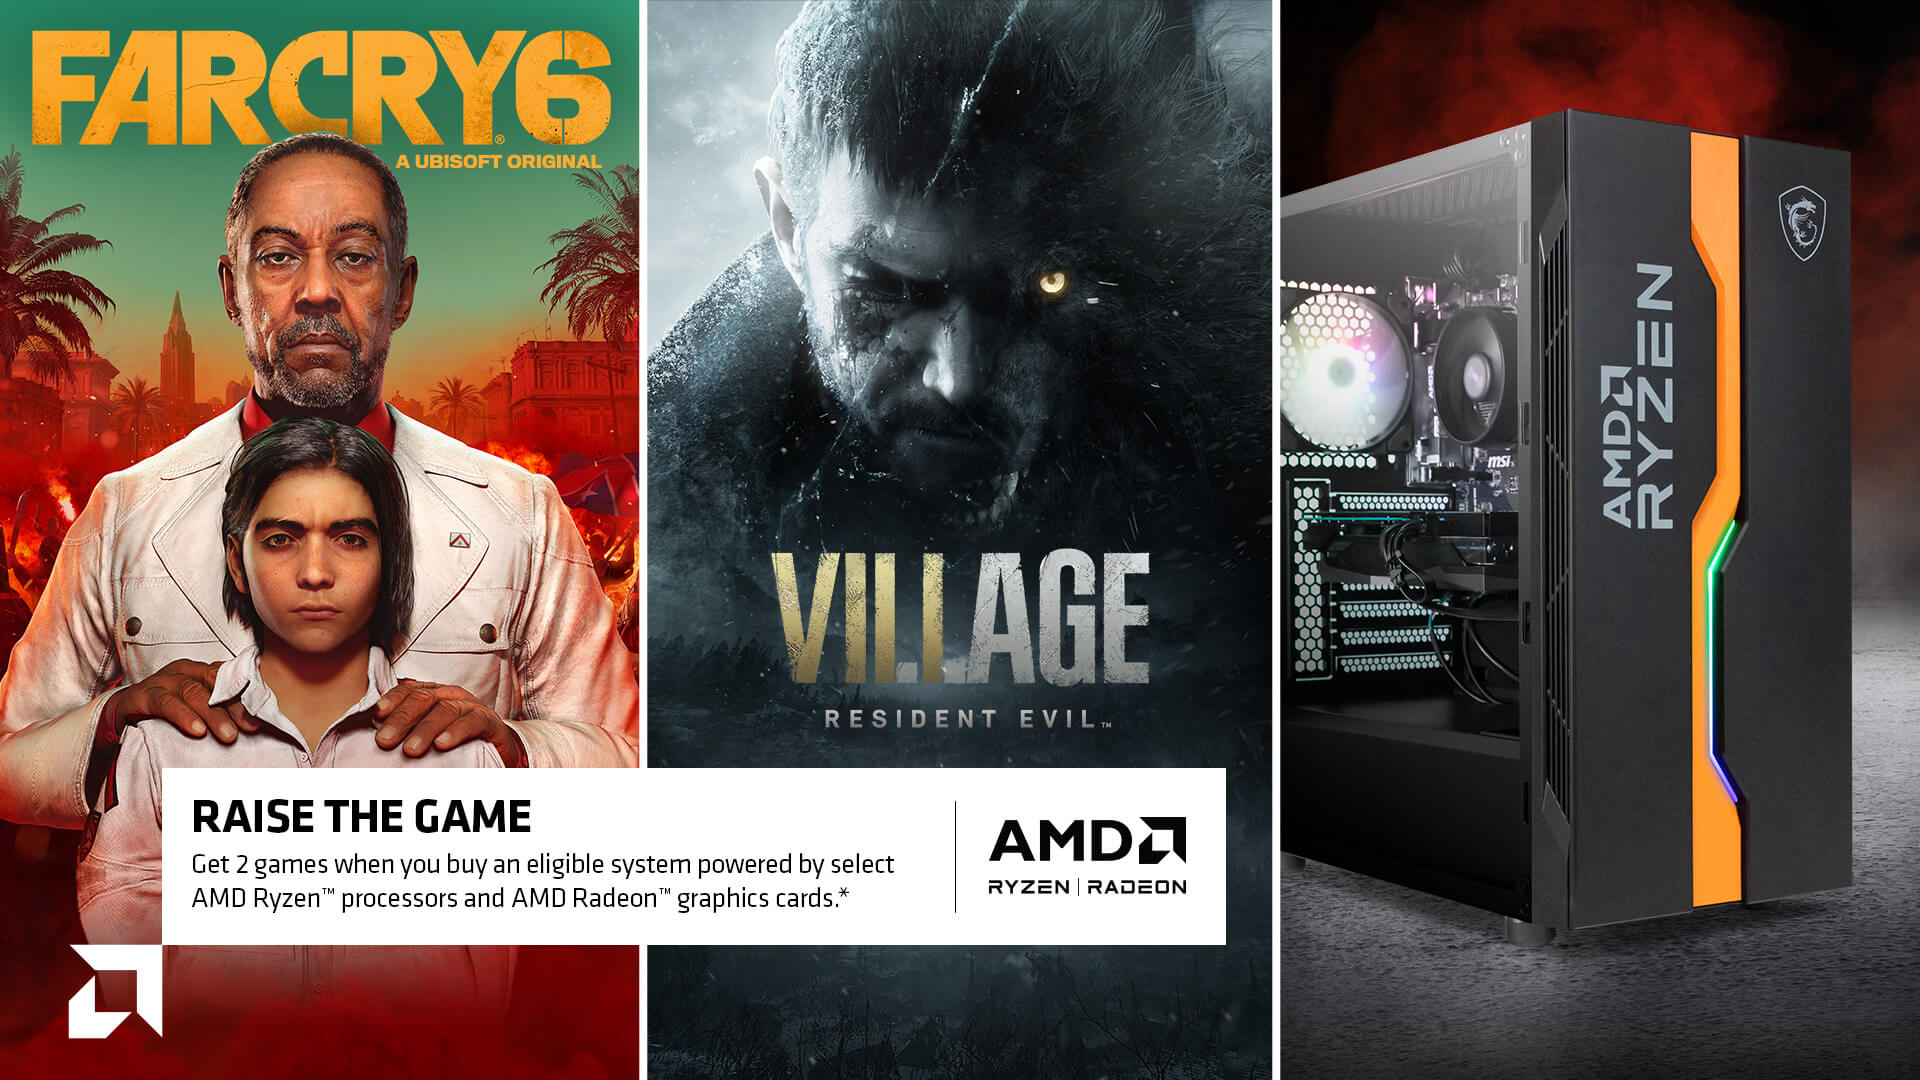 RAISE THE GAME - Get 2 games when you buy an eligible system powered by select AMD Ryzen™ processors and AMD Radeon™ graphics cards.*